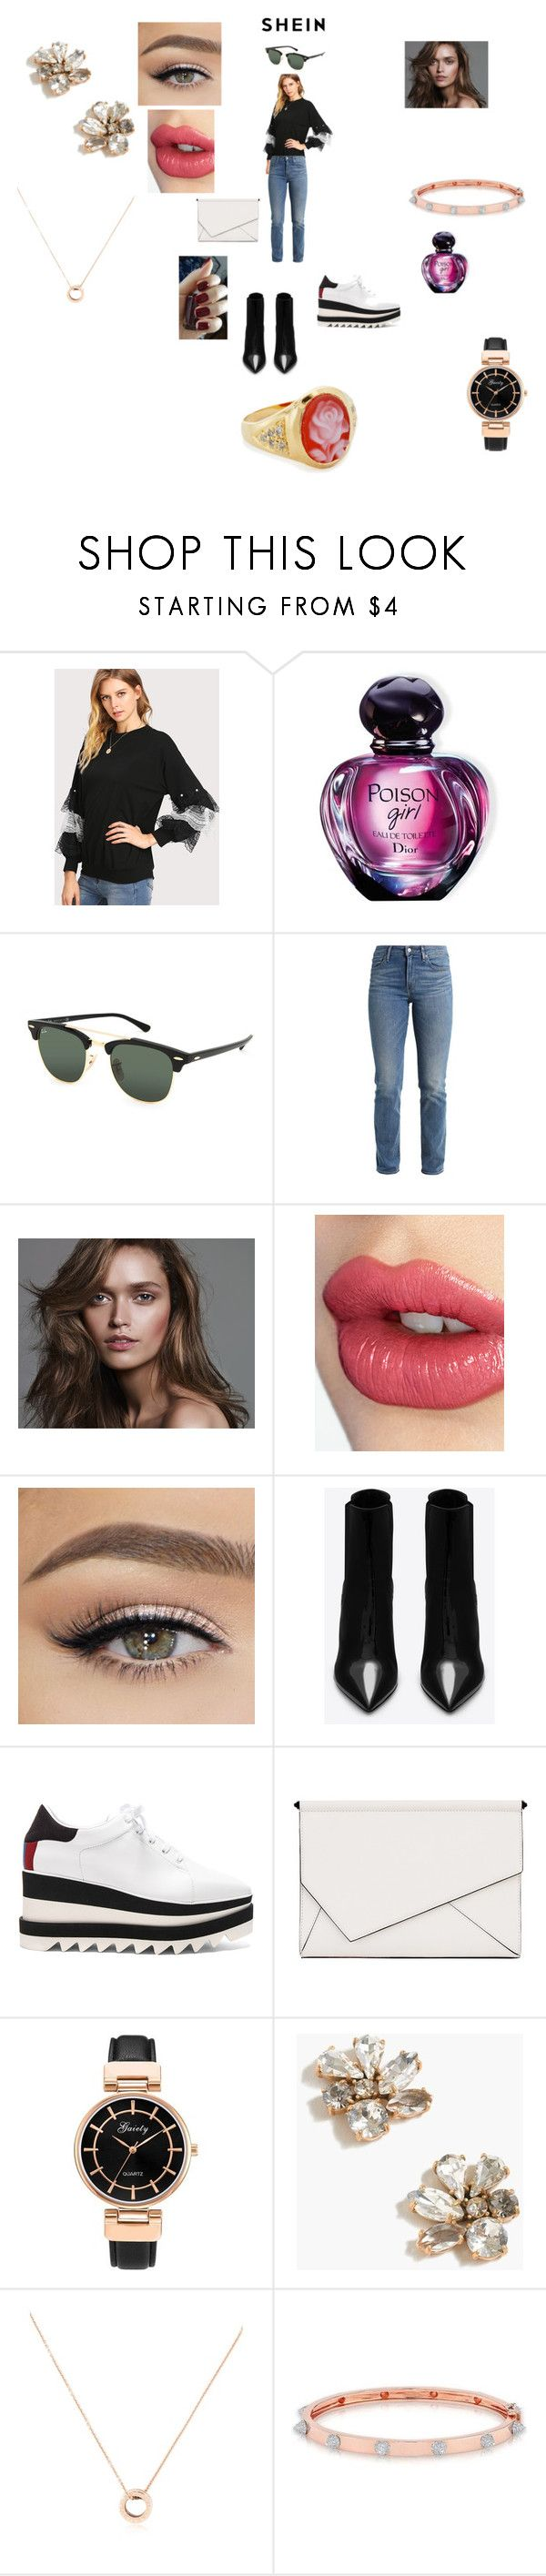 """SHEIN Pearl And Layered Lace Detail Pullover"" by annali1983 ❤ liked on Polyvore featuring Christian Dior, Ray-Ban, Levi's, Charlotte Tilbury, Yves Saint Laurent, STELLA McCARTNEY, Kendall + Kylie, J.Crew, Bulgari and Anne Sisteron"